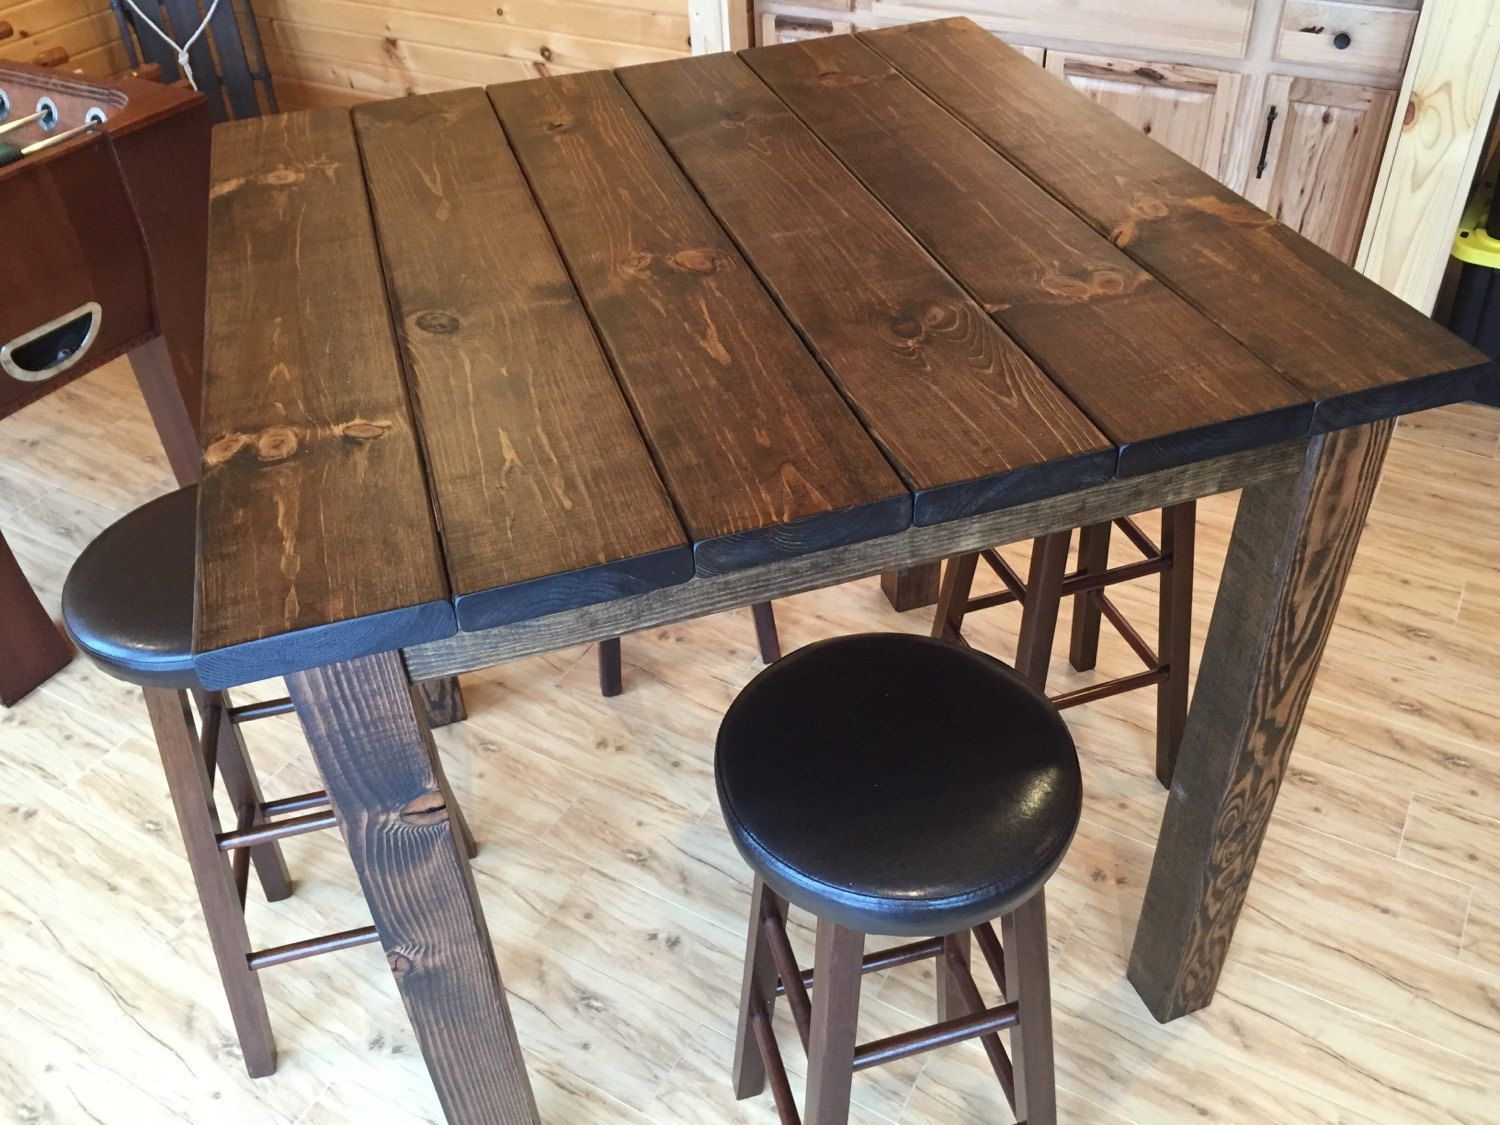 table height high chair safavieh dining chairs target 36 quot square rustic reclaimed wood bar